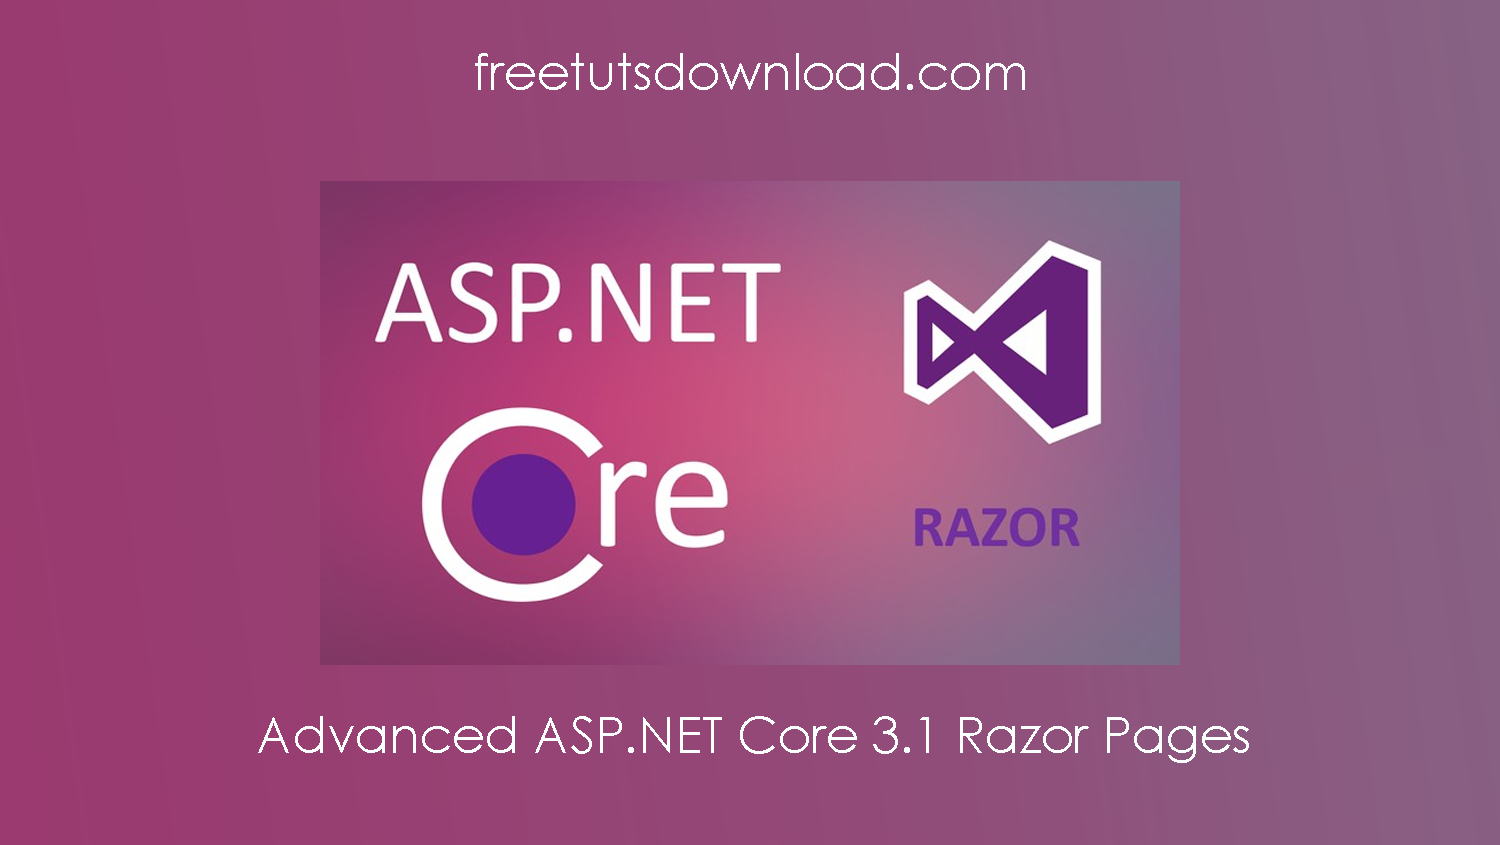 Advanced ASP.NET Core 3.1 Razor Pages Free Download